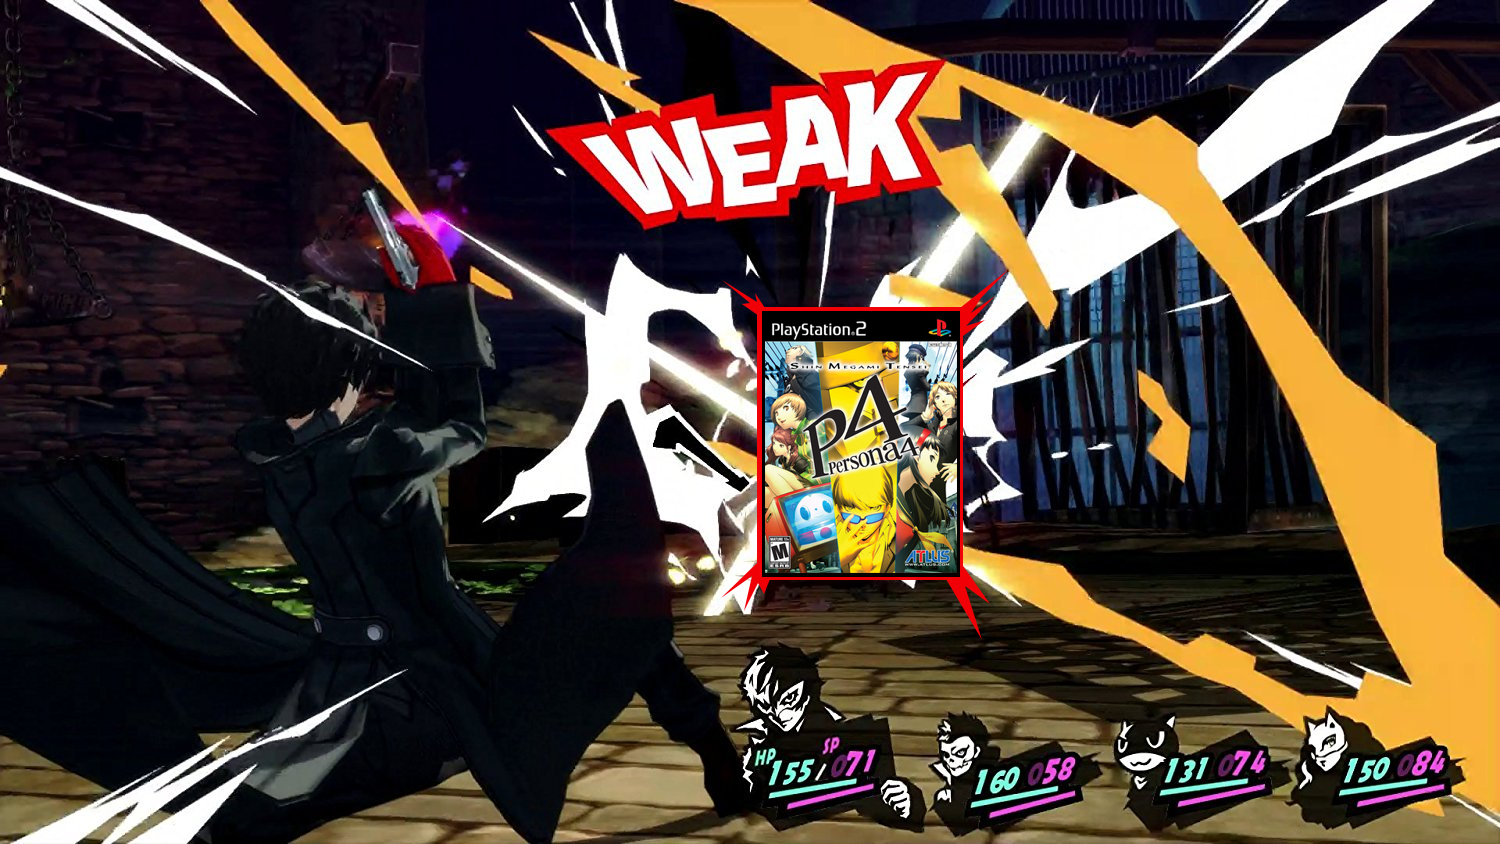 Atlus has shown that you can turn a cult classic game into a massive world  wide selling IP if you stick with the franchise and continue making quality